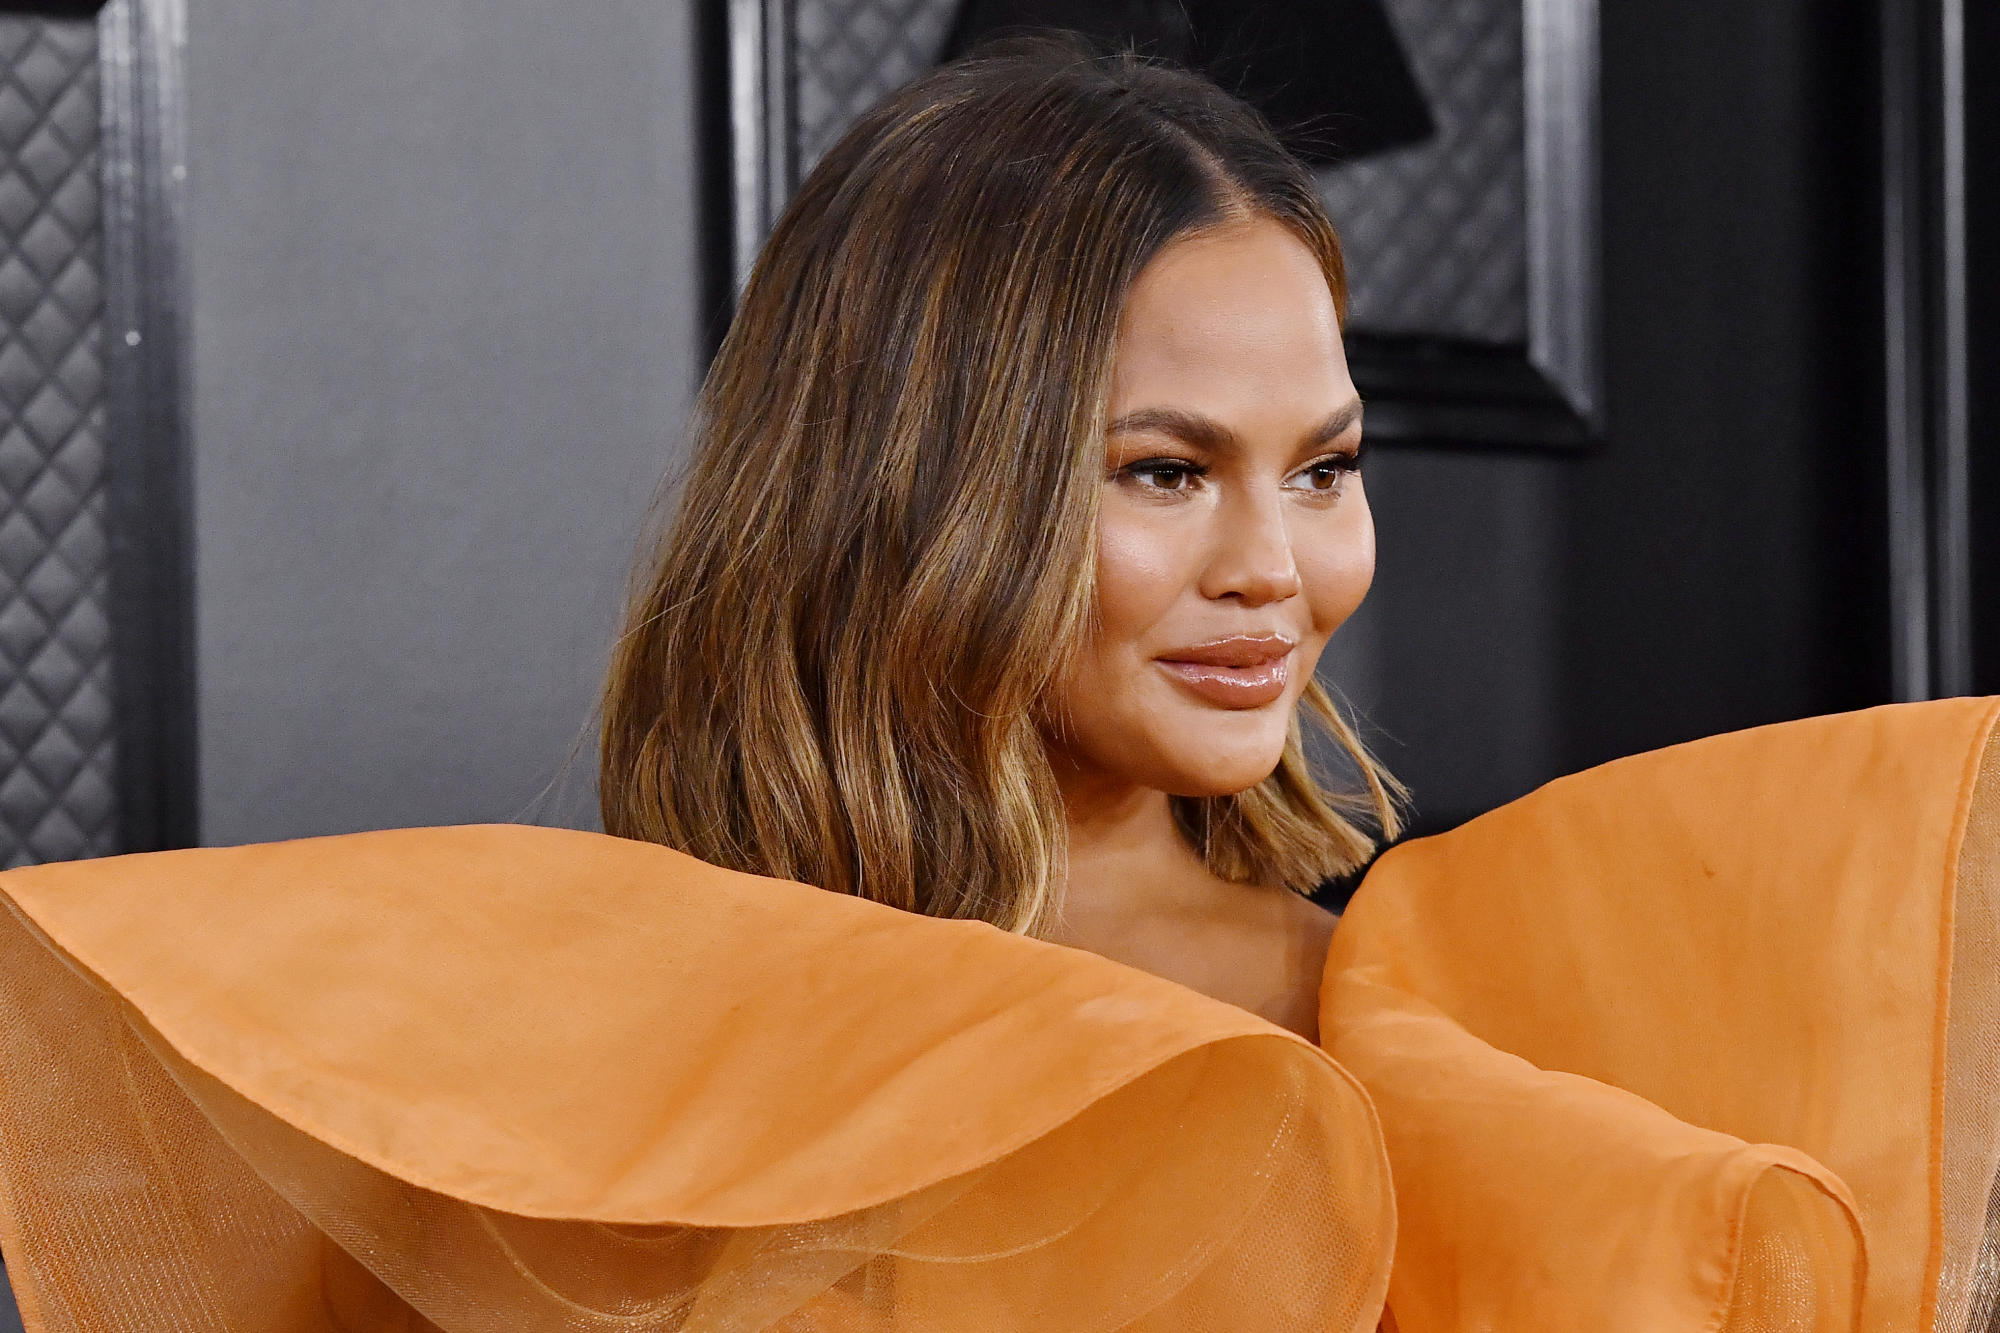 Chrissy Teigen responds to tweet accusing her of 'using' her miscarriage for self-promotion